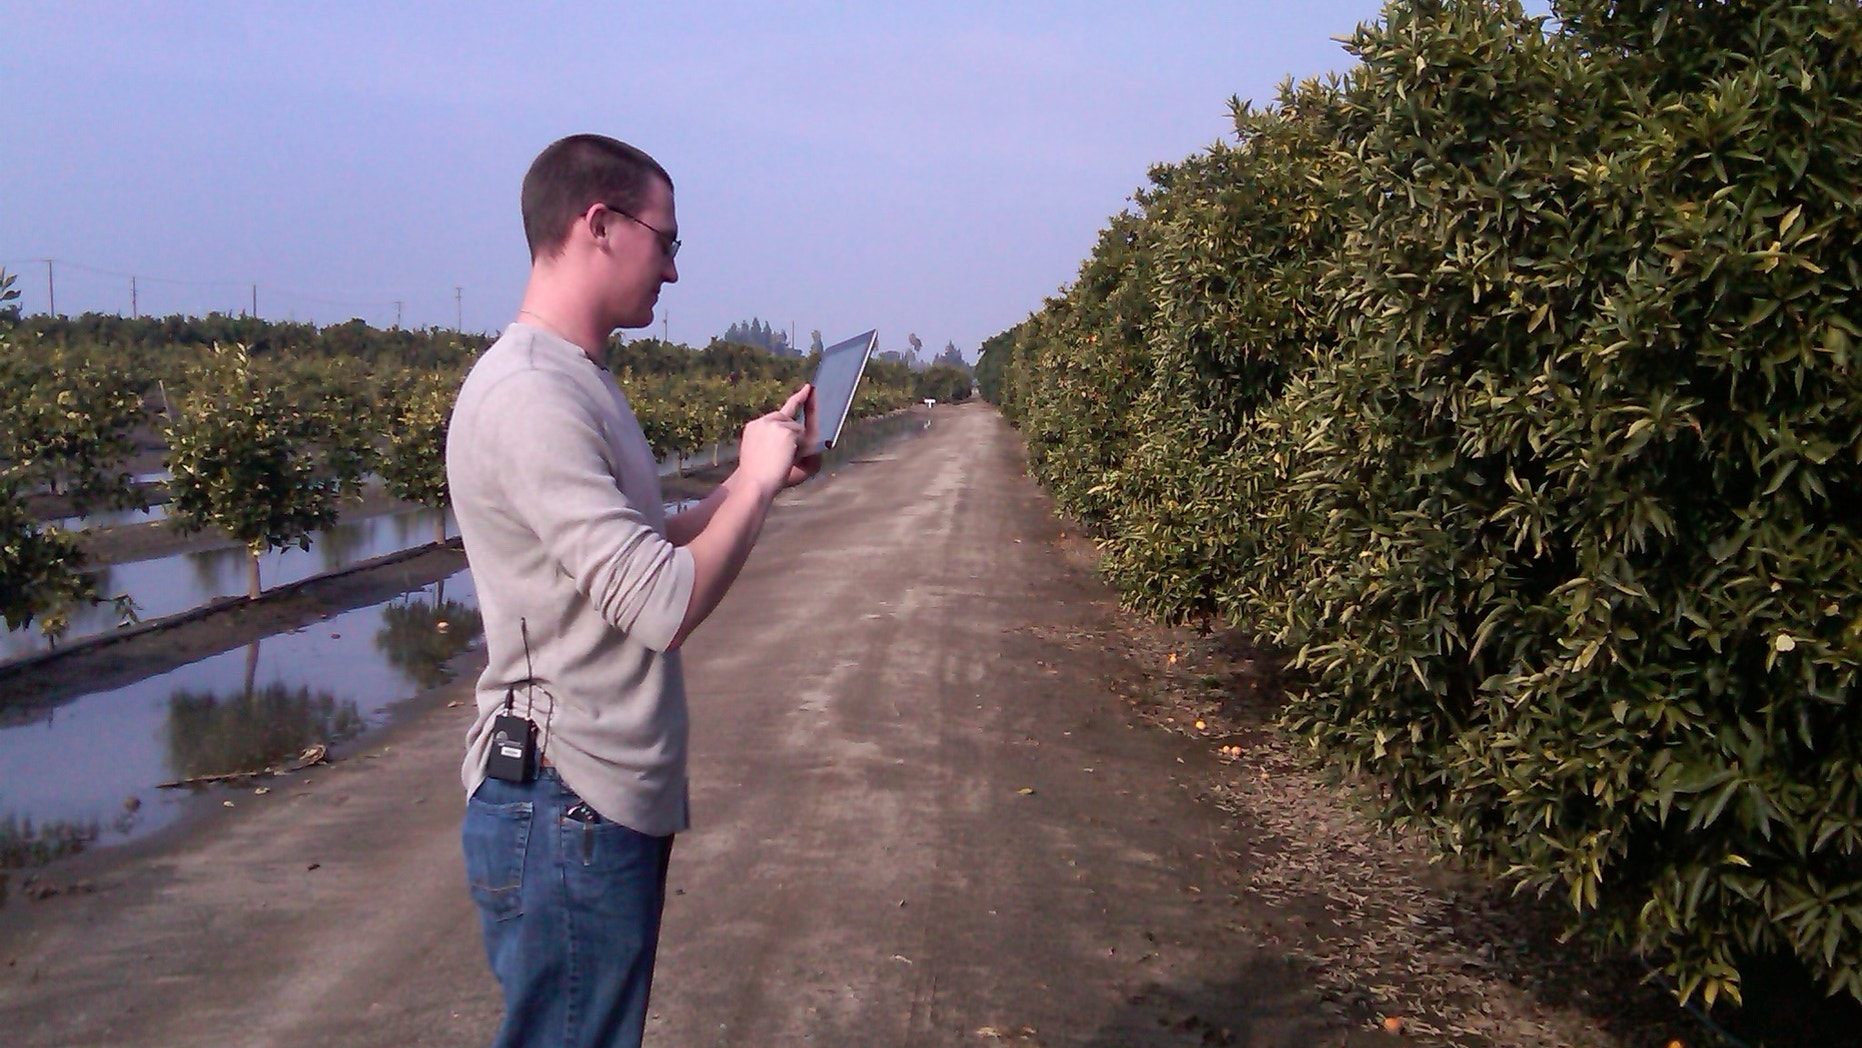 SFC Jarrod Mattison with the US Army Reserve, using an app to learn more about the crops he'll encounter in Afghanistan.